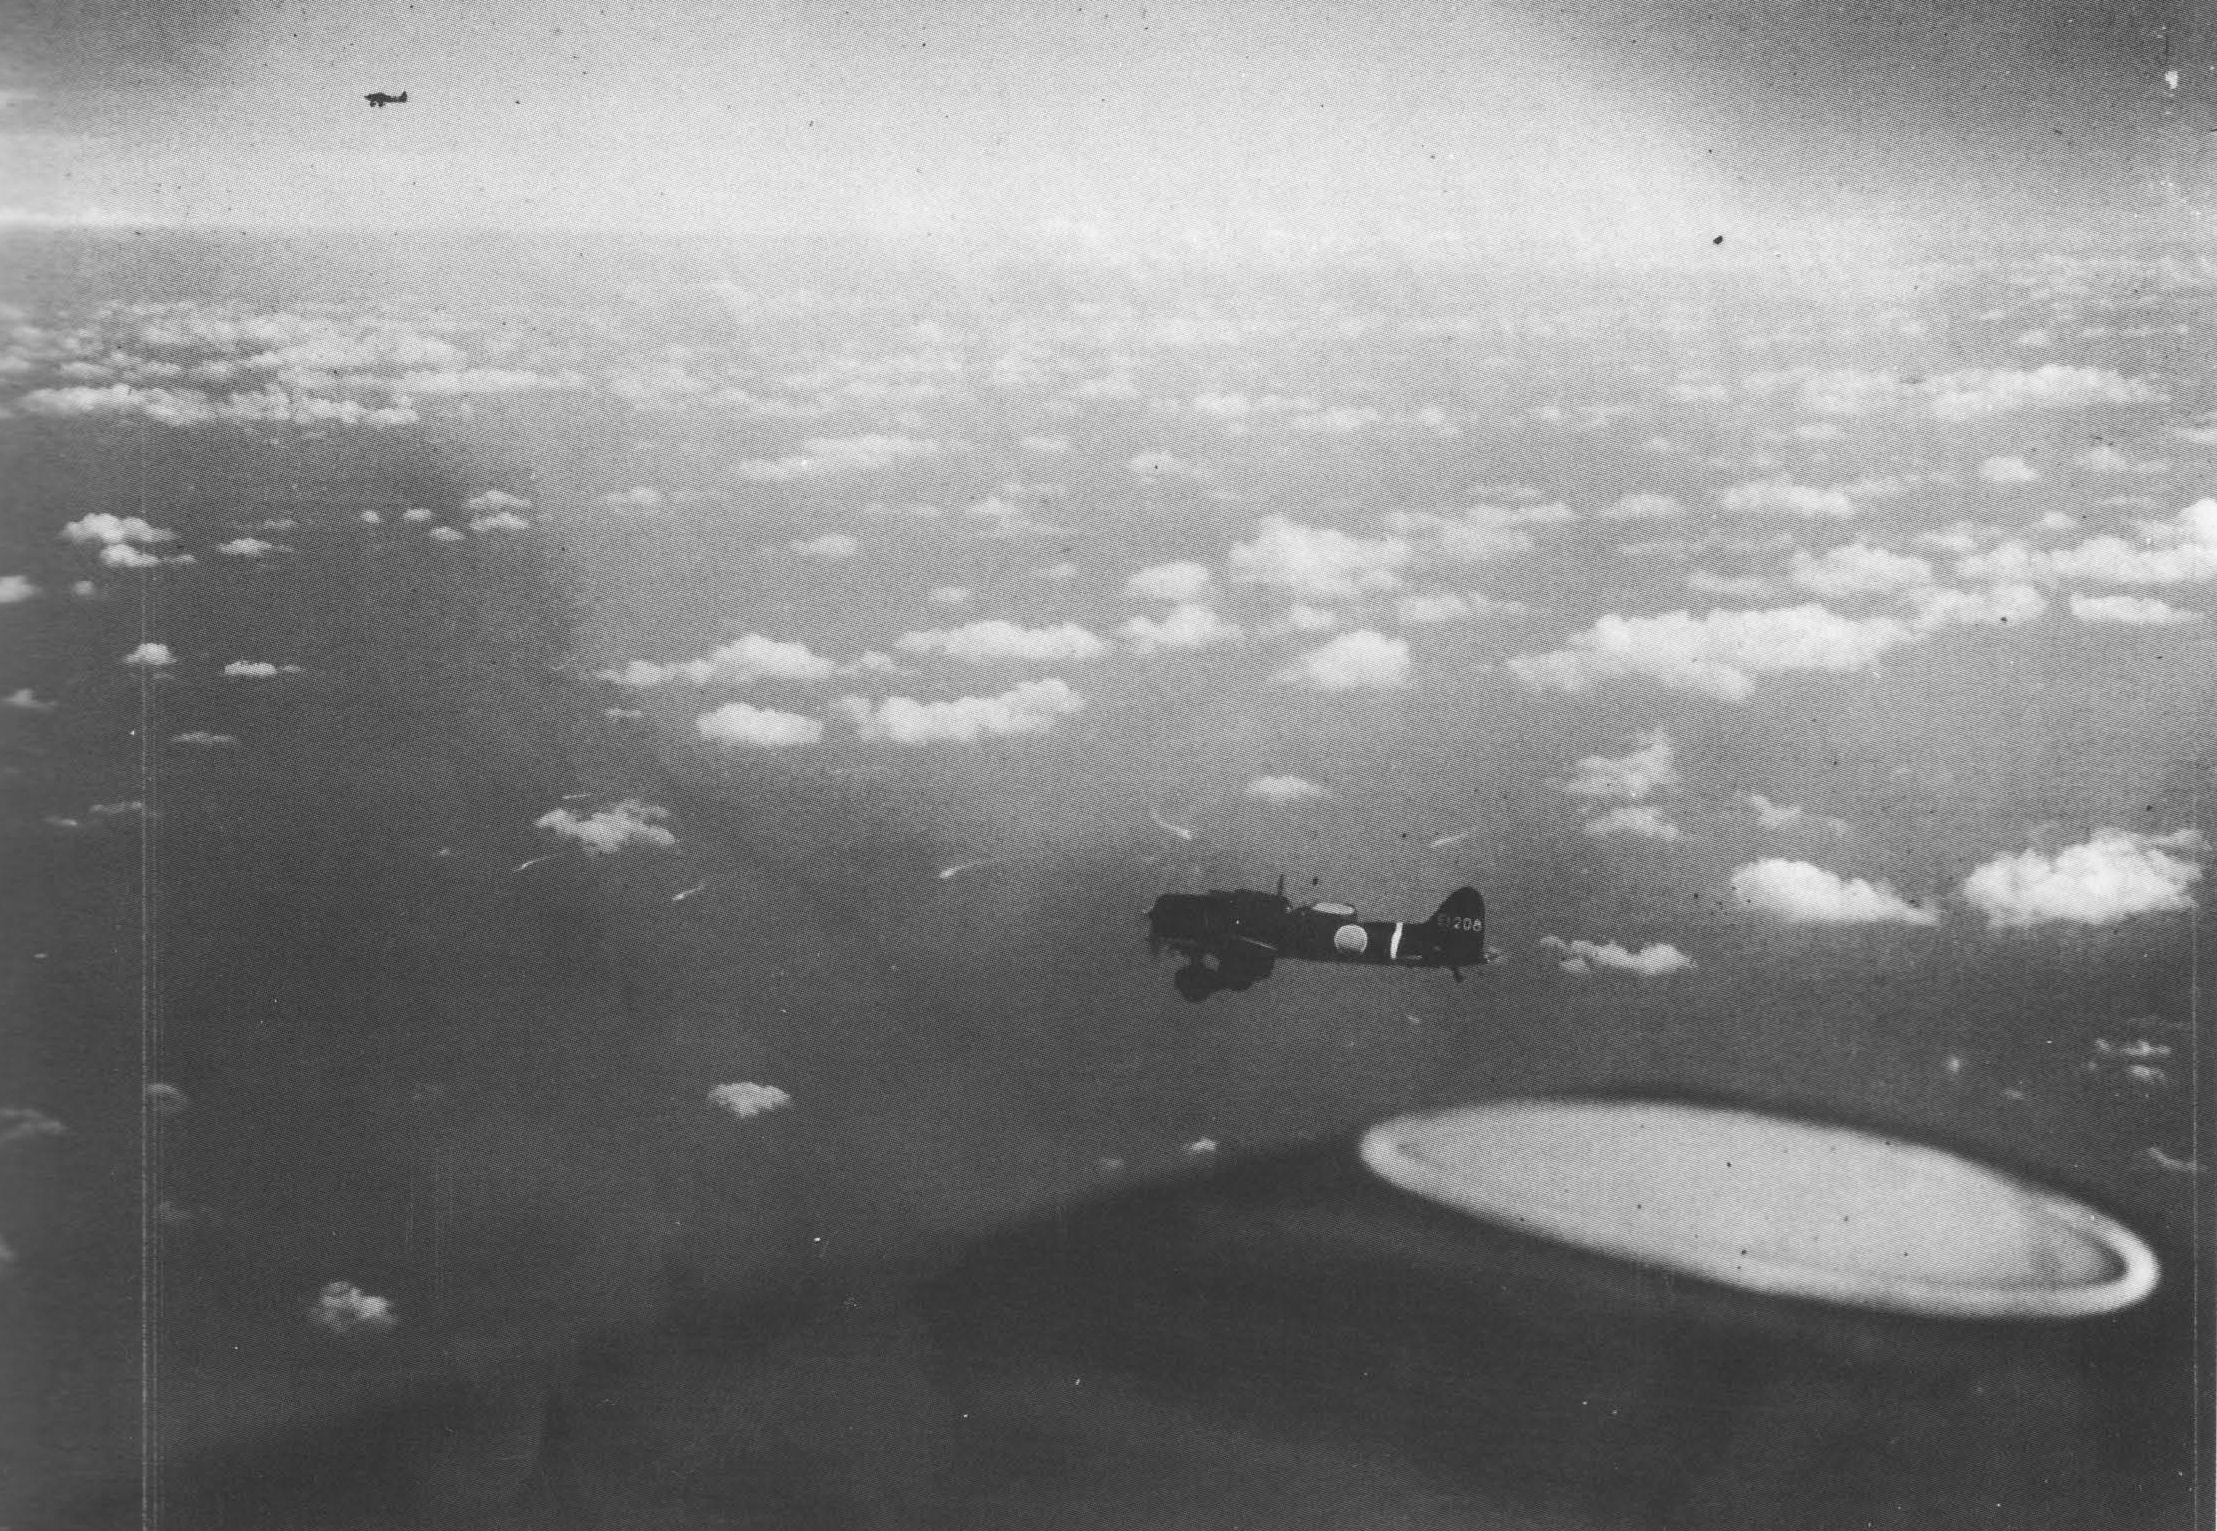 D3A Type 99 dive bomber of either Shokaku or Zuikaku in flight, either en route to attack Neosho and Sims in morning or returning from failed scouting mission in afternoon, Battle of Coral Sea, 7 May